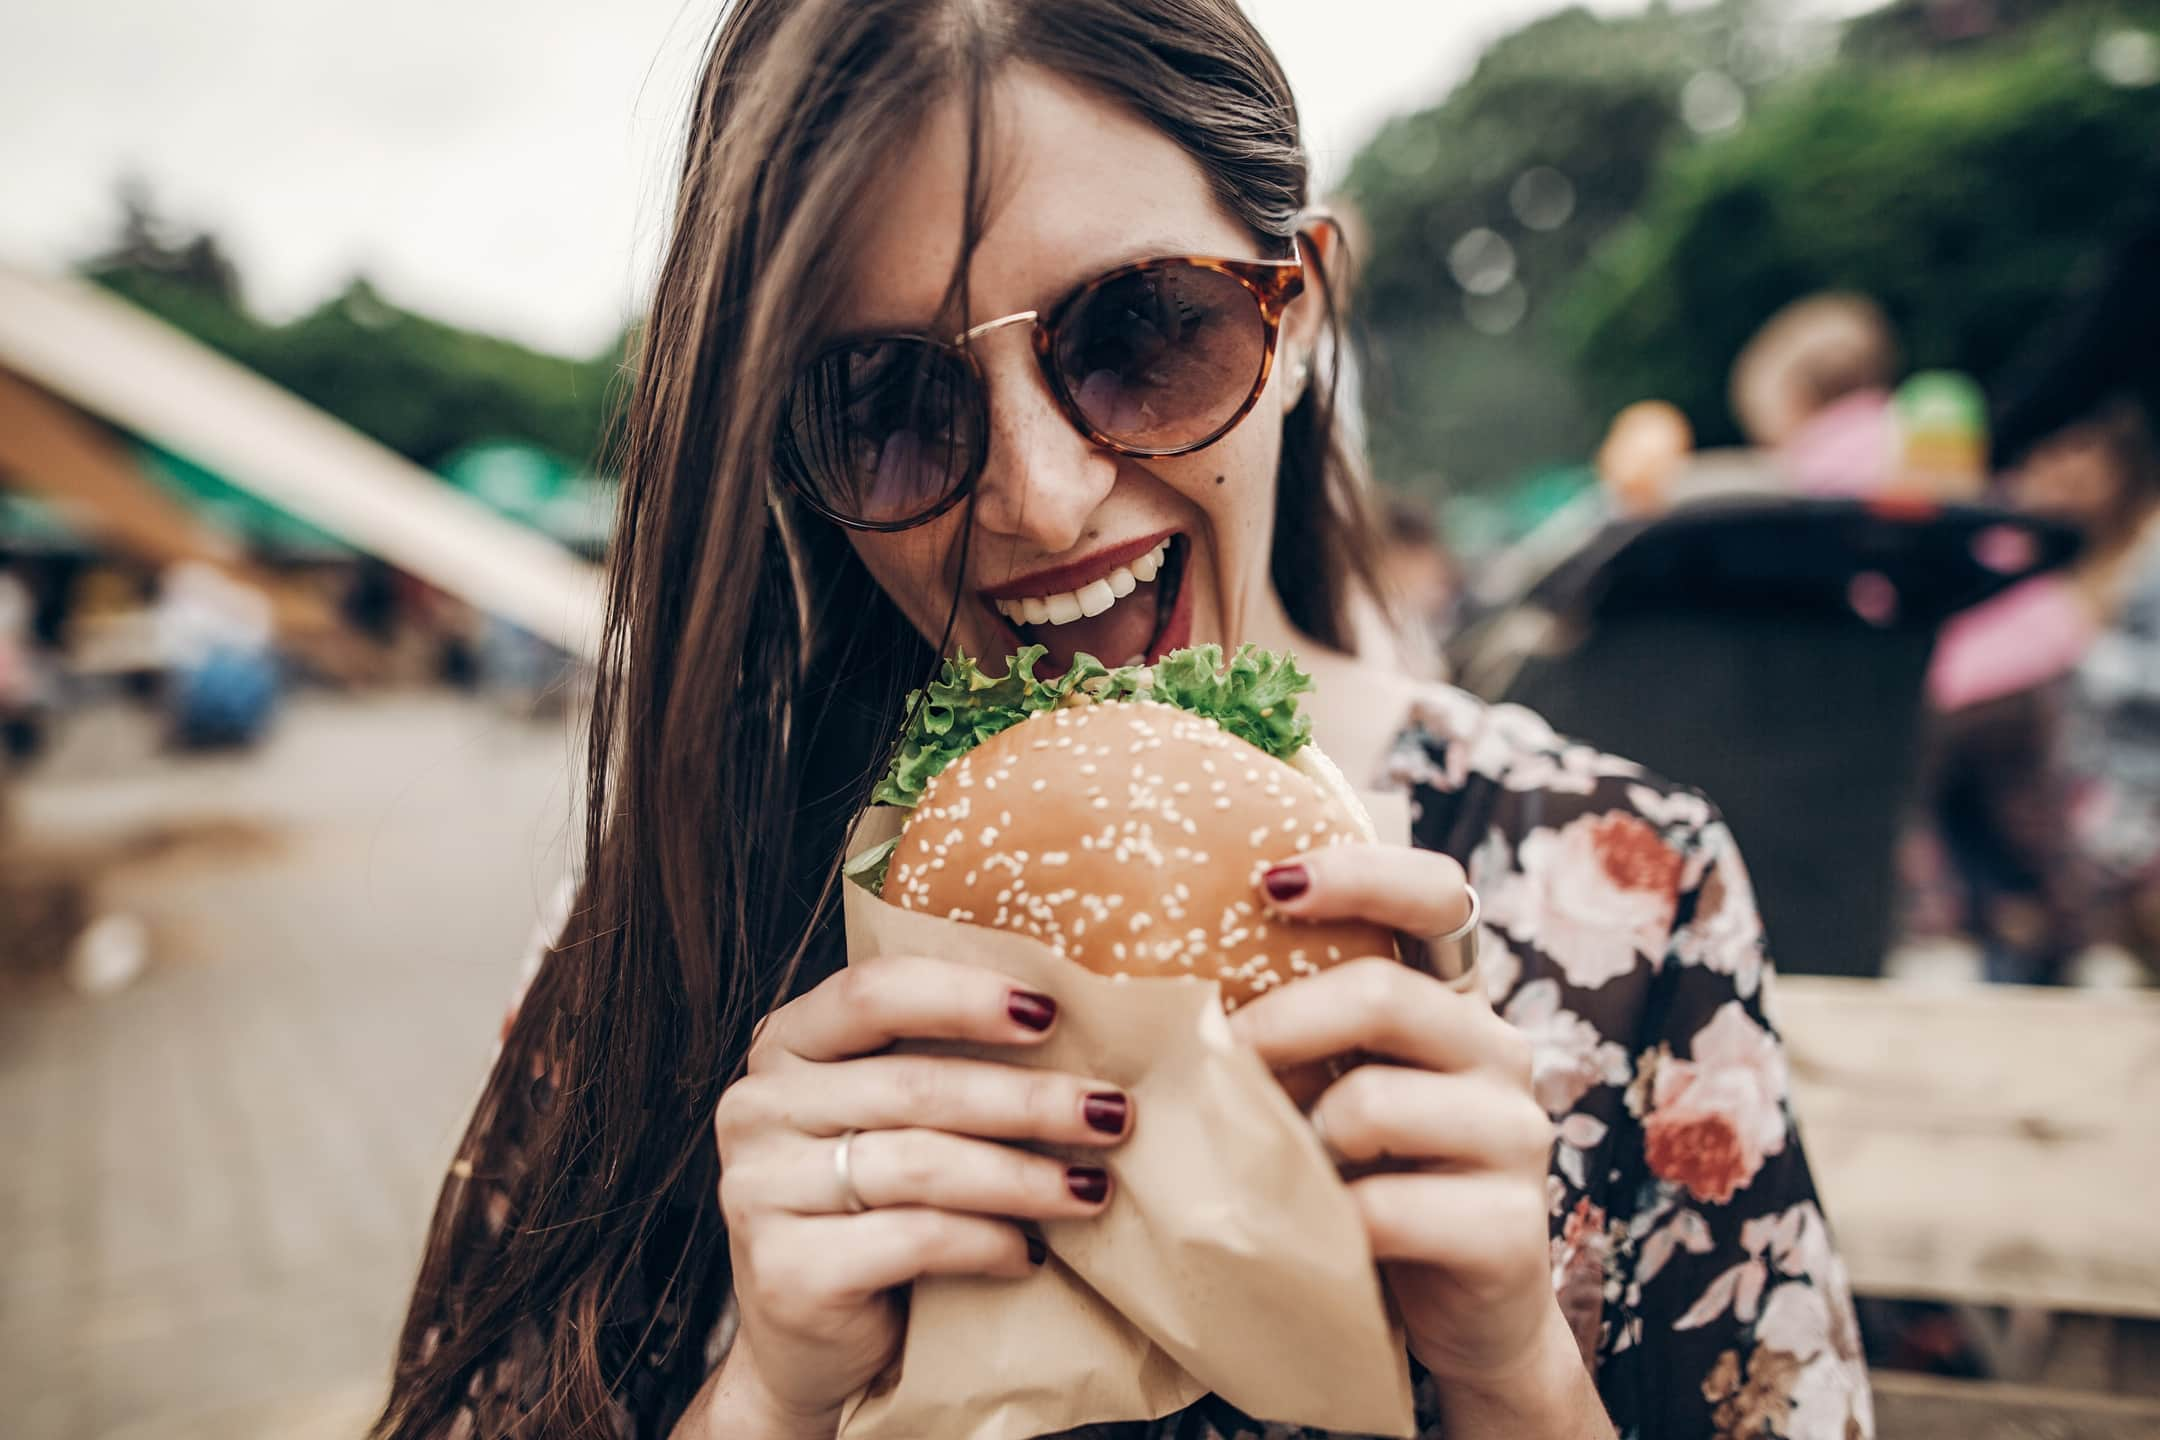 stylish hipster woman eating juicy burger. boho girl biting cheeseburger, smiling at street food festival. summertime. summer vacation travel picnic. space for text